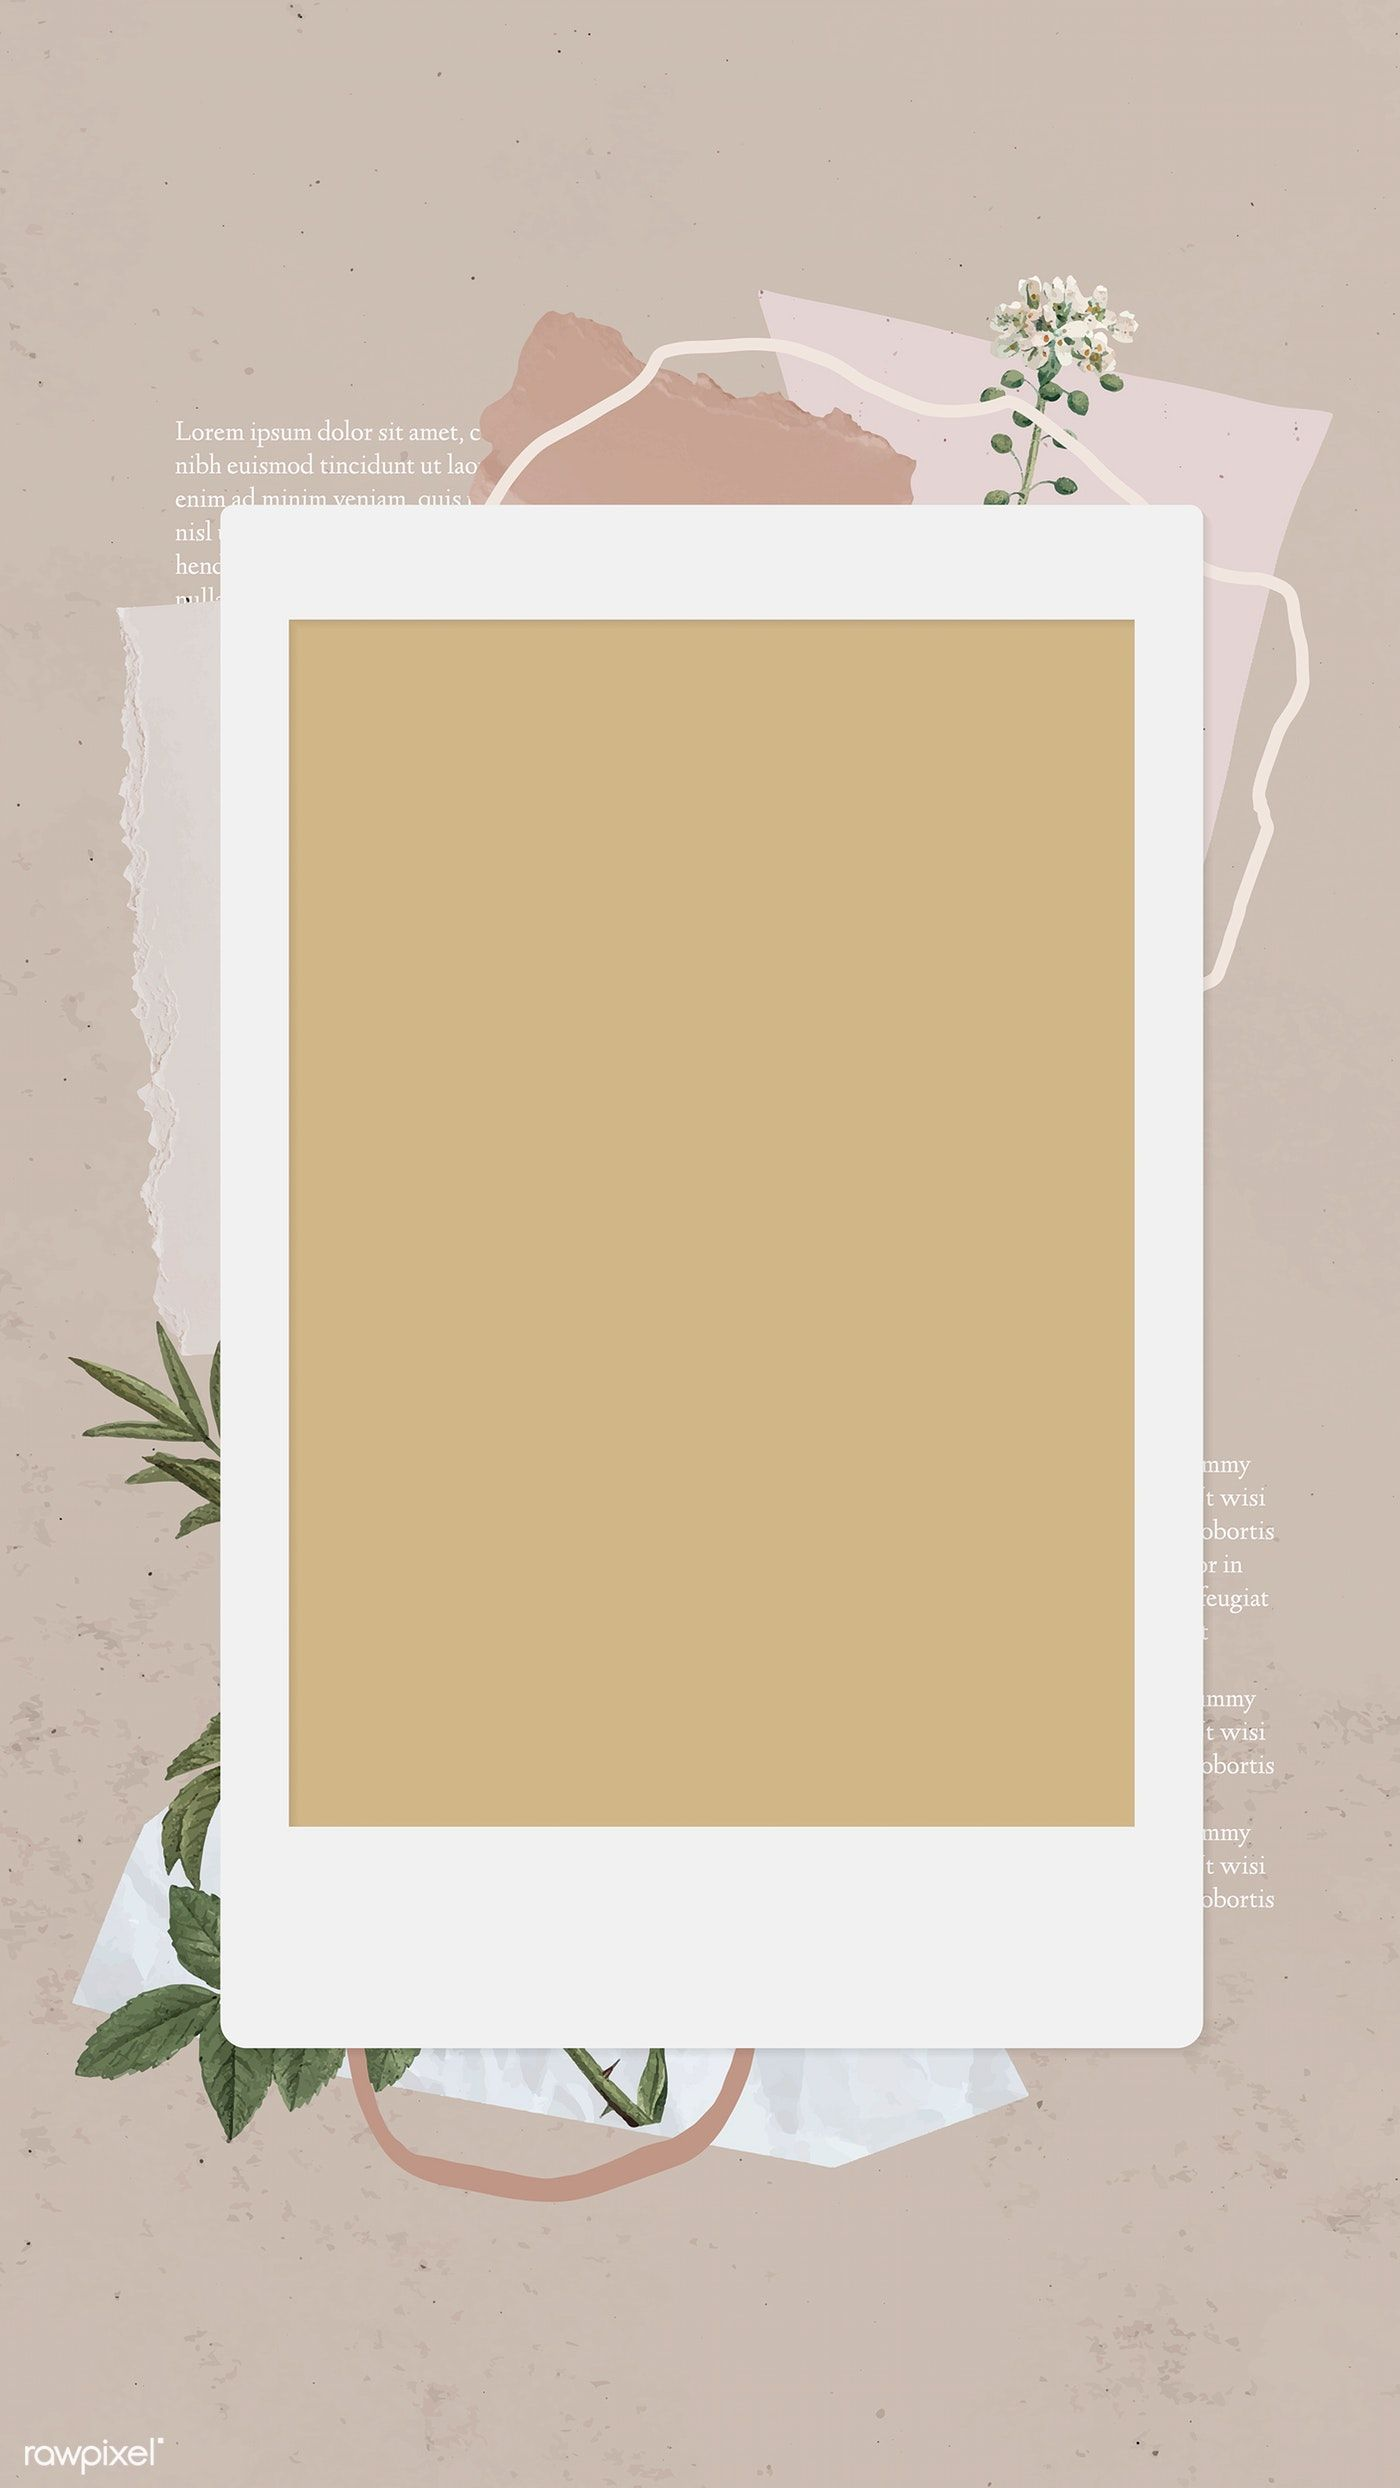 Download Premium Vector Of Blank Collage Photo Frame Template